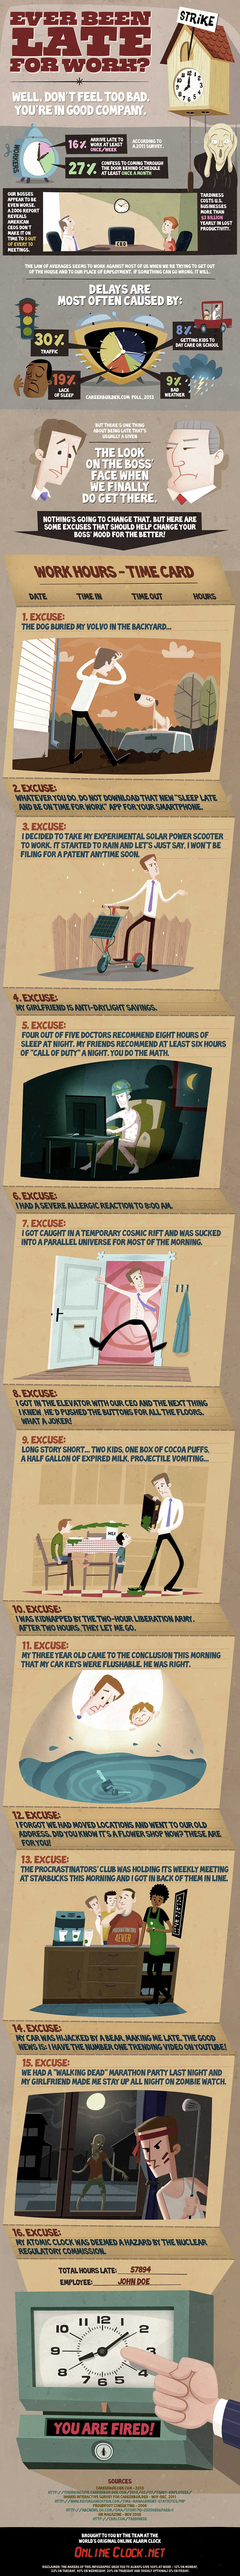 Late For Work - An Infographic by OnlineClock.net